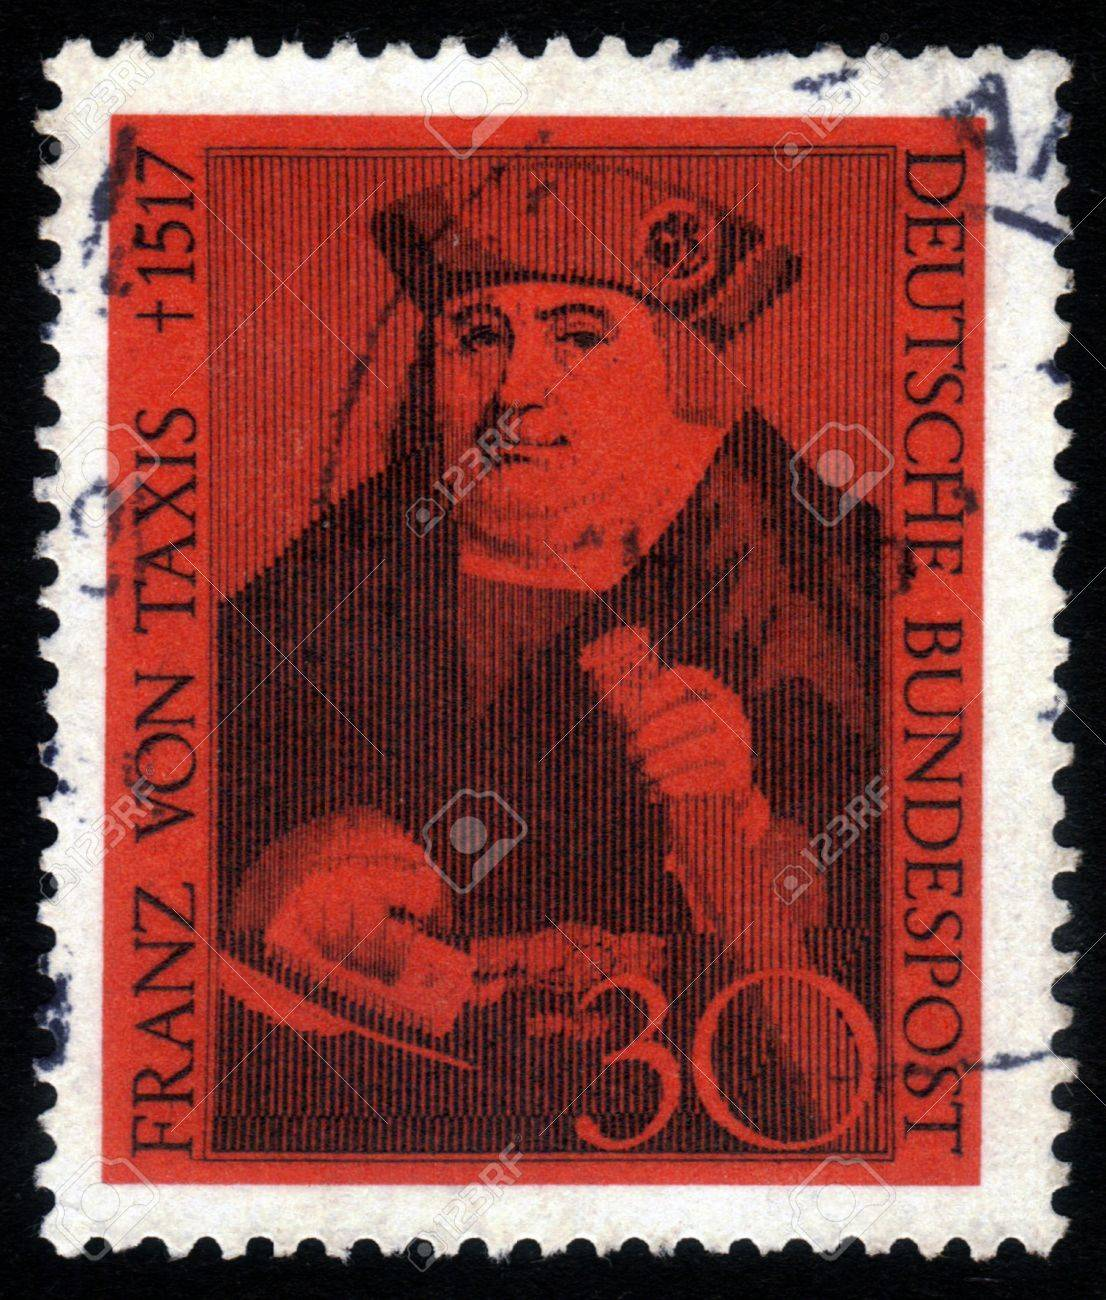 GERMANY - CIRCA 1967: A stamp printed in the Germany shows Franz von Taxis, founder of the Taxis postal system, circa 1967 Stock Photo - 15641718